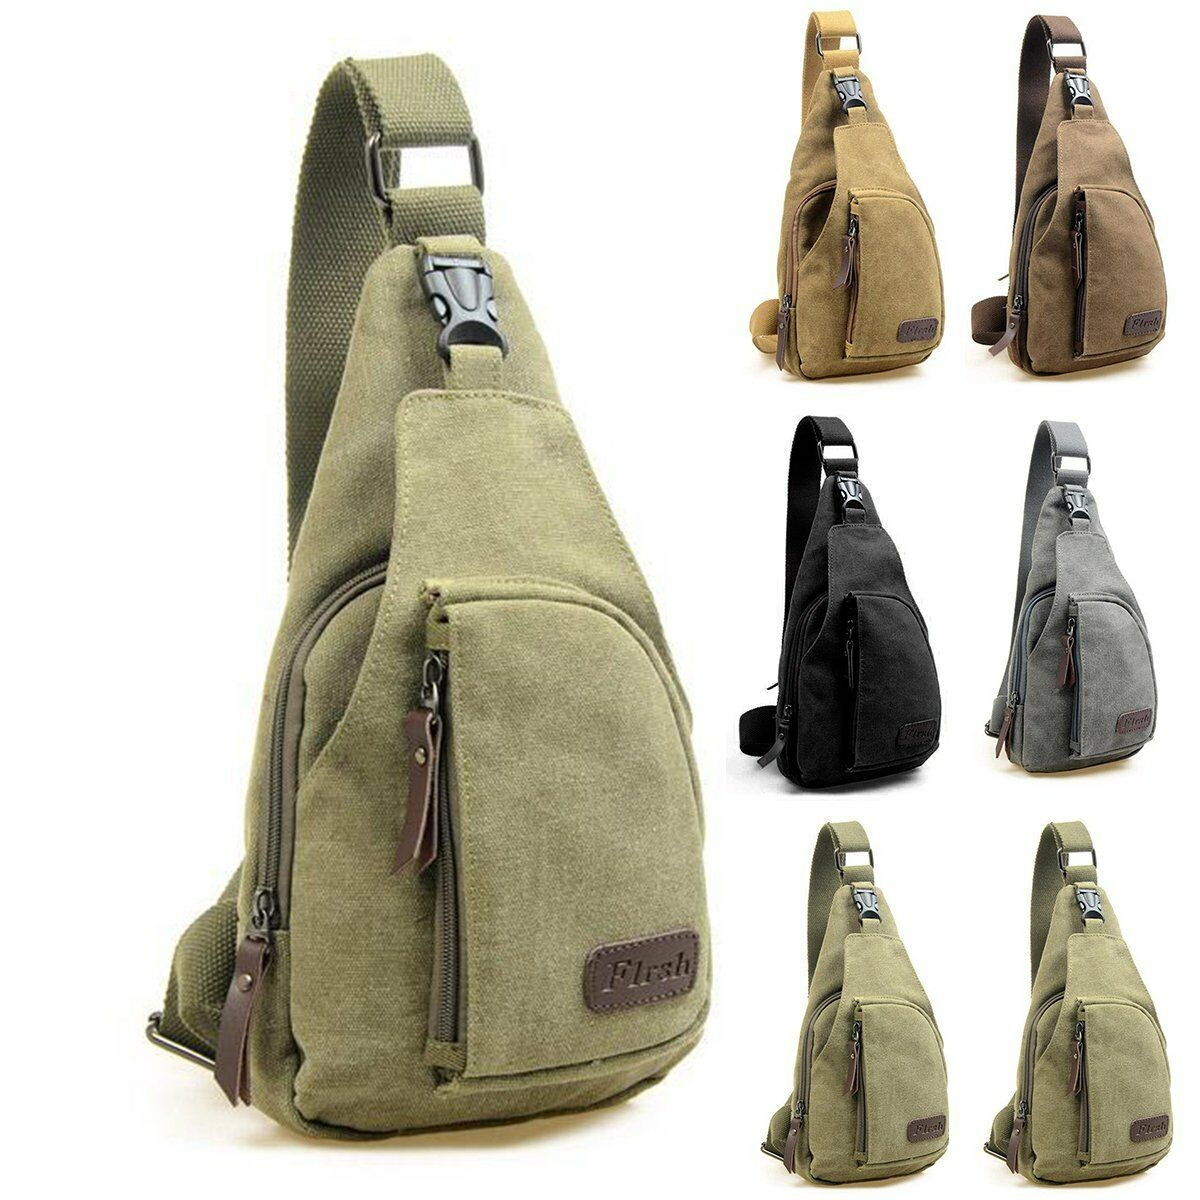 Men Vintage Canvas Leather Satchel Shoulder Sling Chest Bag NEW